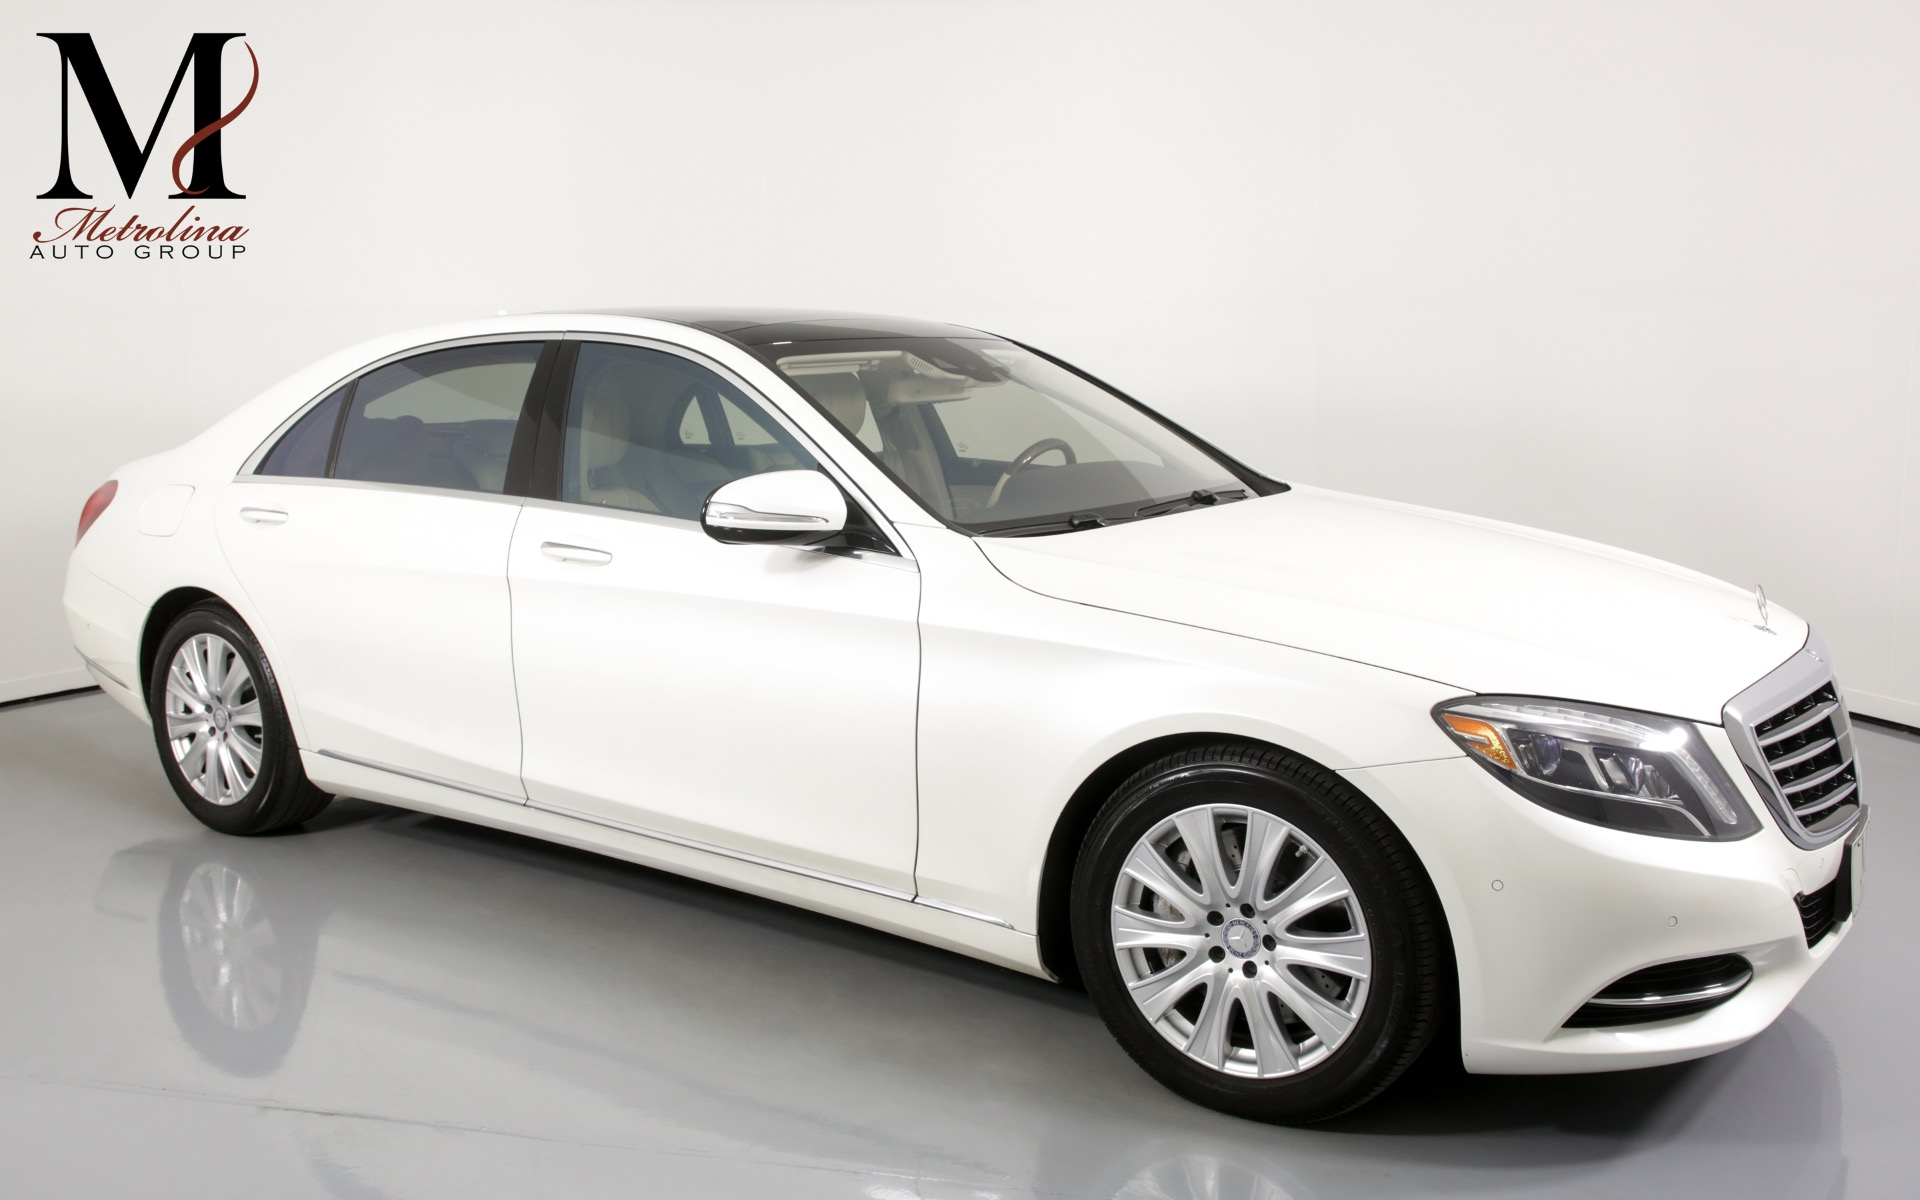 Used 2014 Mercedes-Benz S-Class S 550 4MATIC for sale $36,456 at Metrolina Auto Group in Charlotte NC 28217 - 1